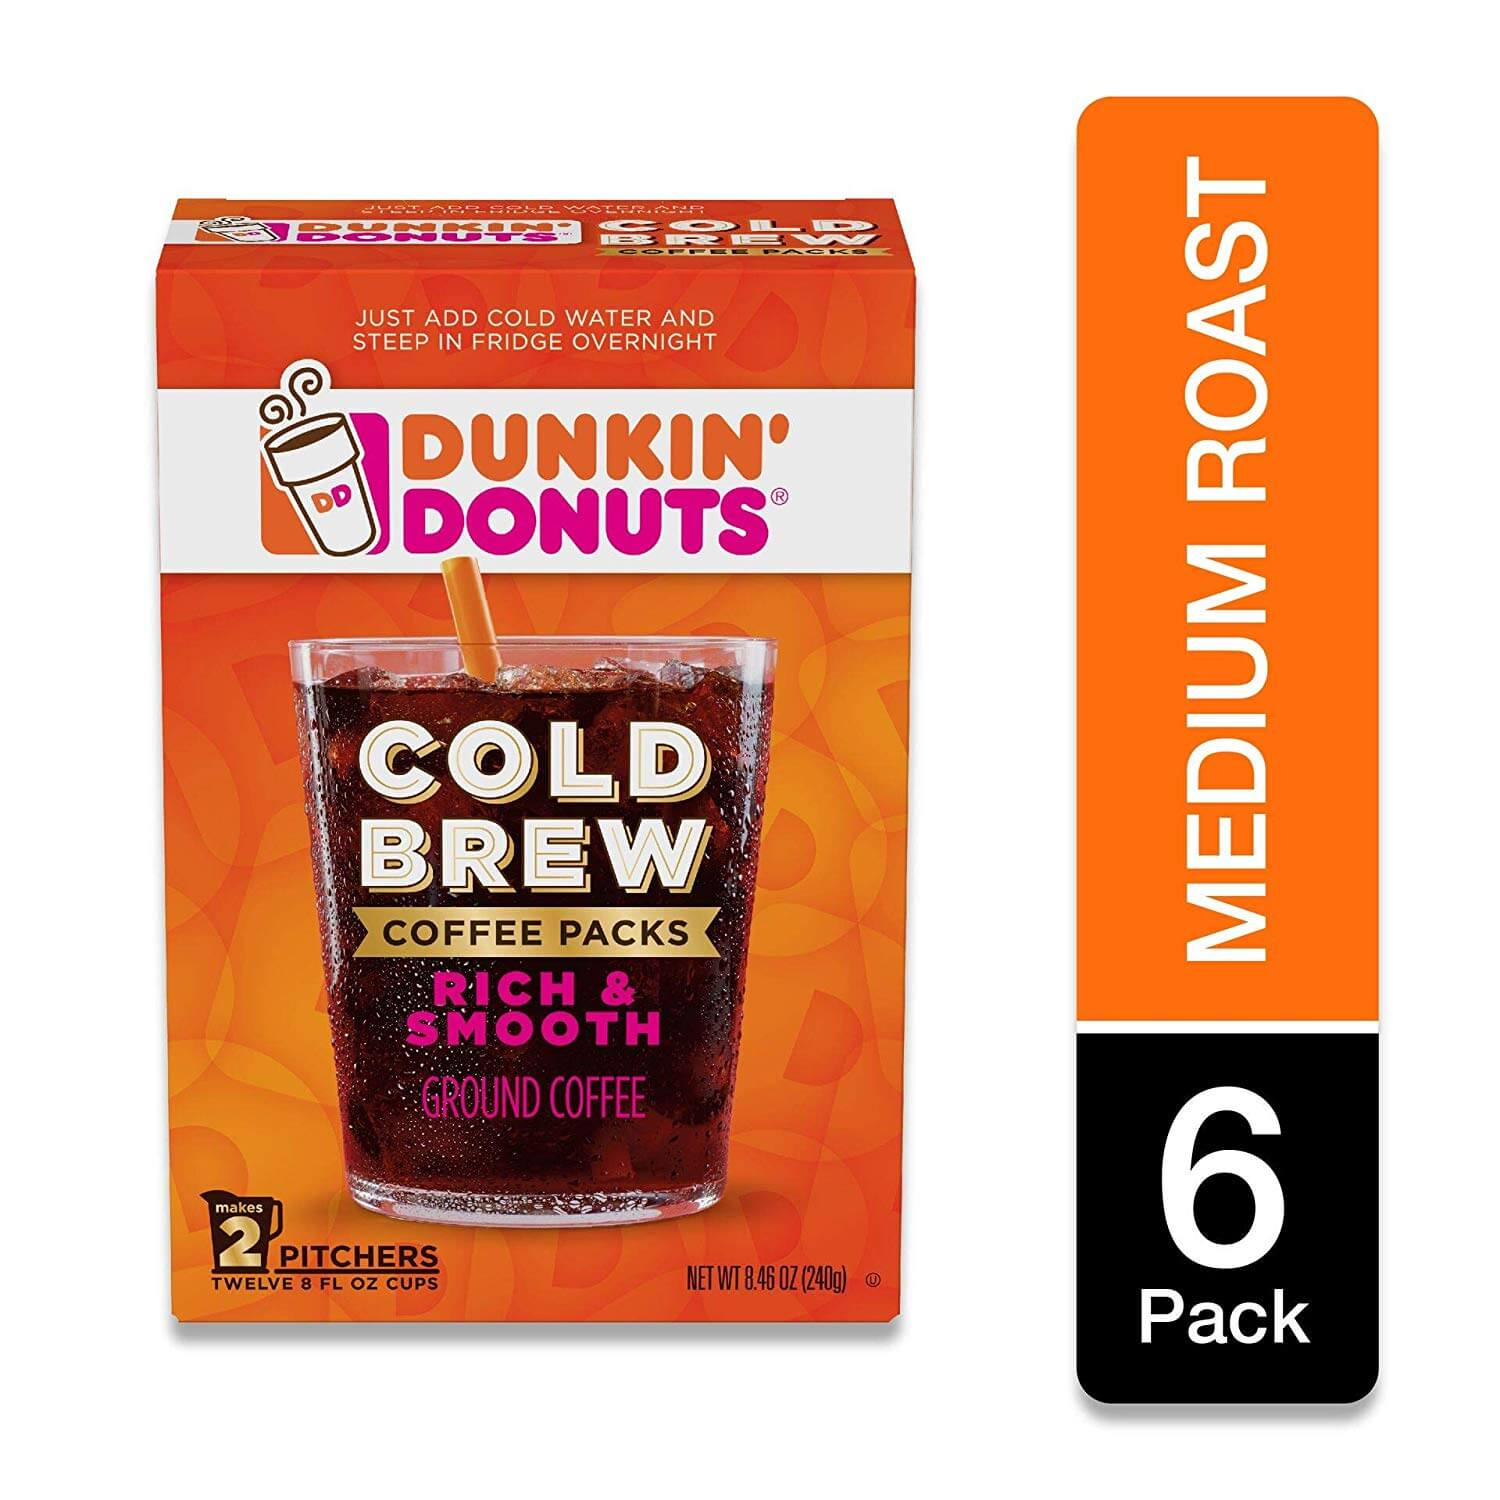 Dunkin' Donuts Cold Brew Coffee Packs